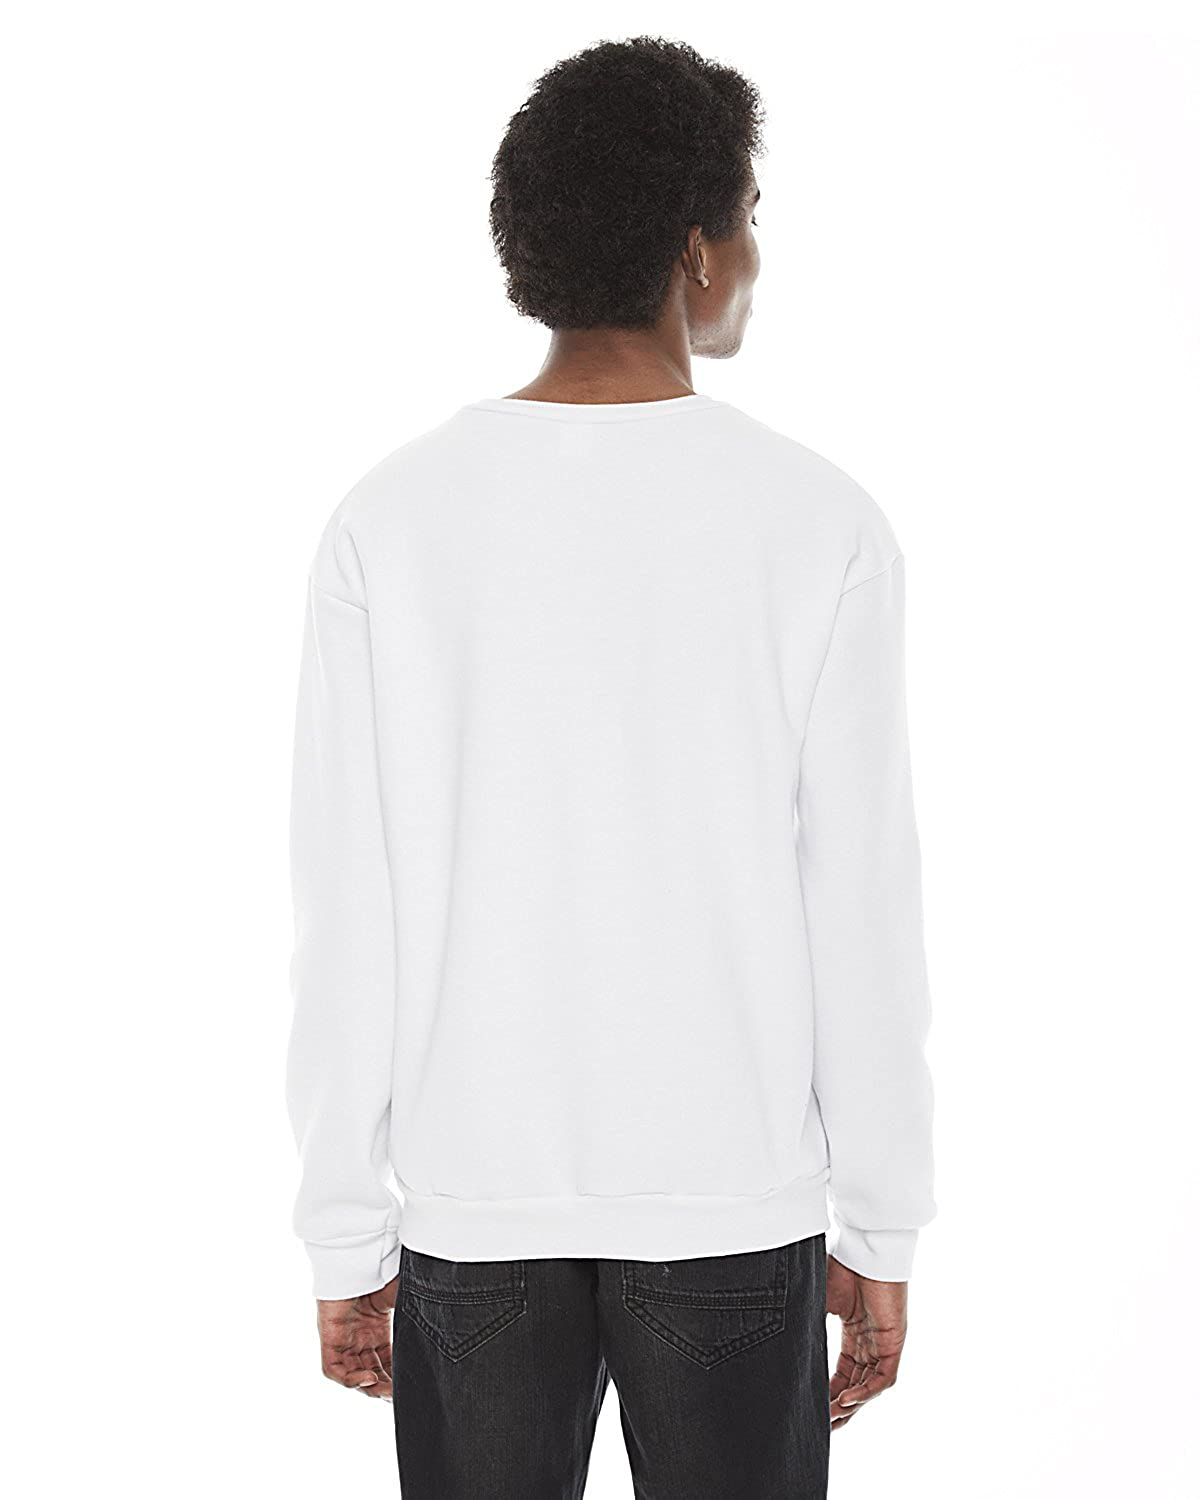 F496 Clementine American Apparel Flex Fleece Drop Shoulder Pullover Crewneck